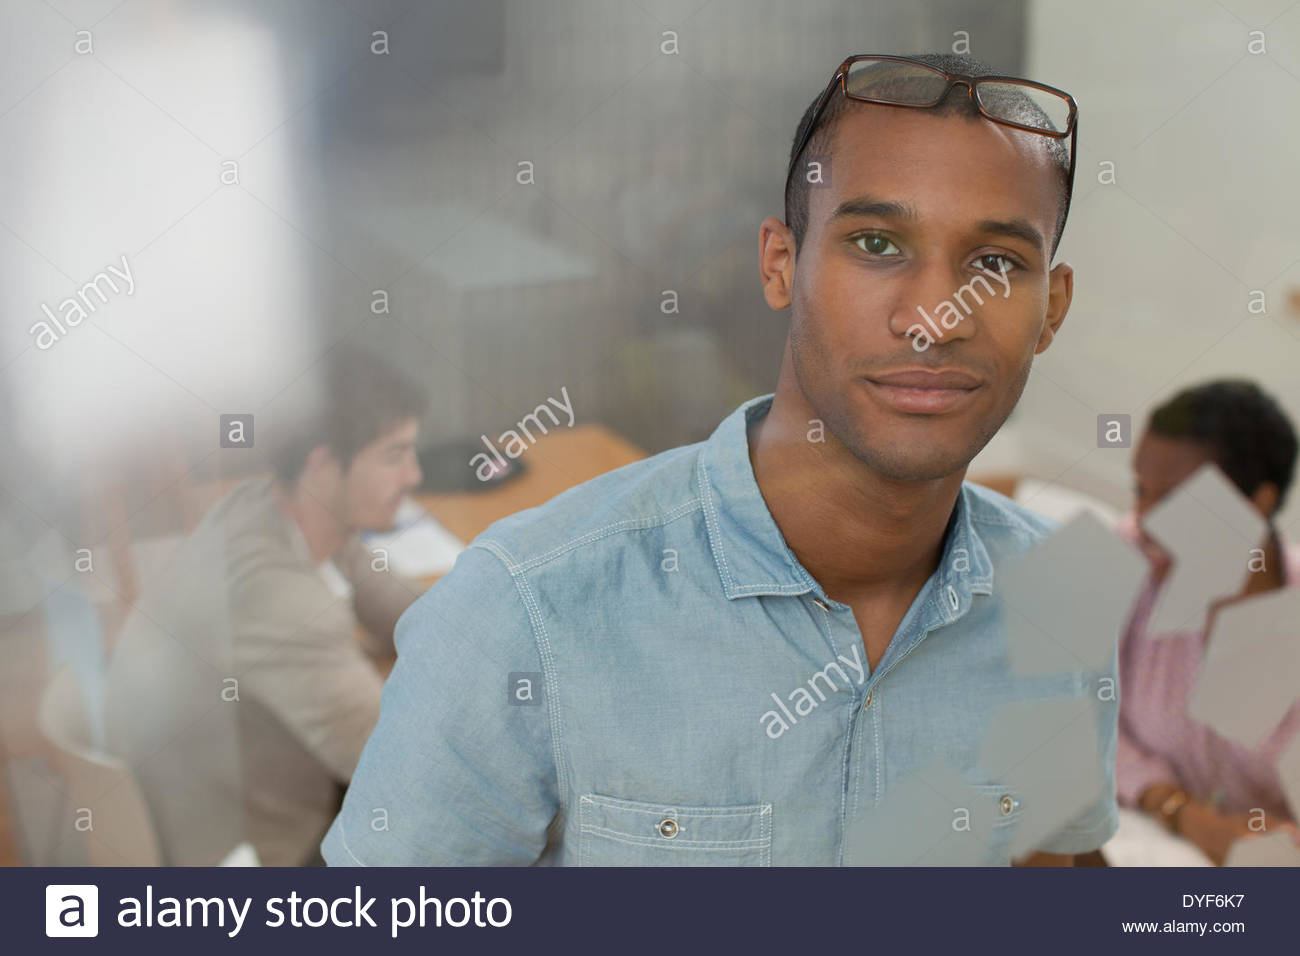 Portrait confident businessman  in conference room - Stock Image